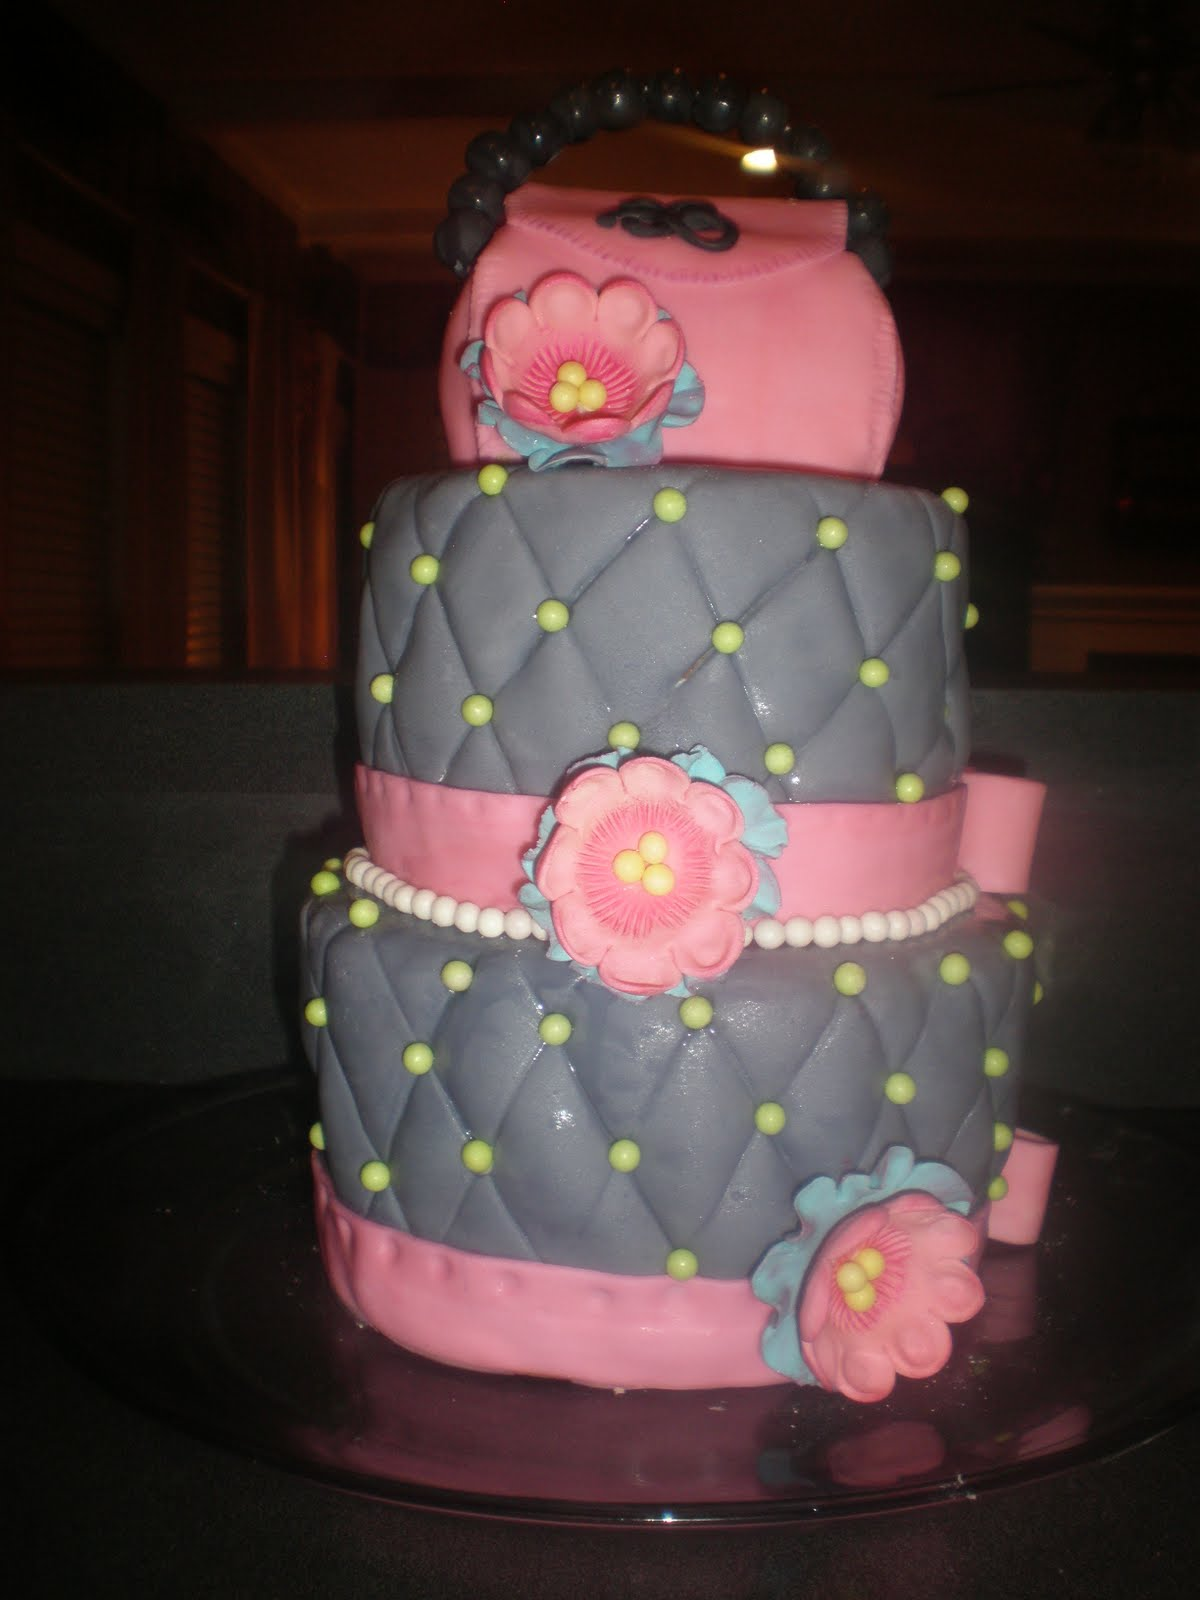 The Hatch Batch 7 Year Old Girls Birthday Cake